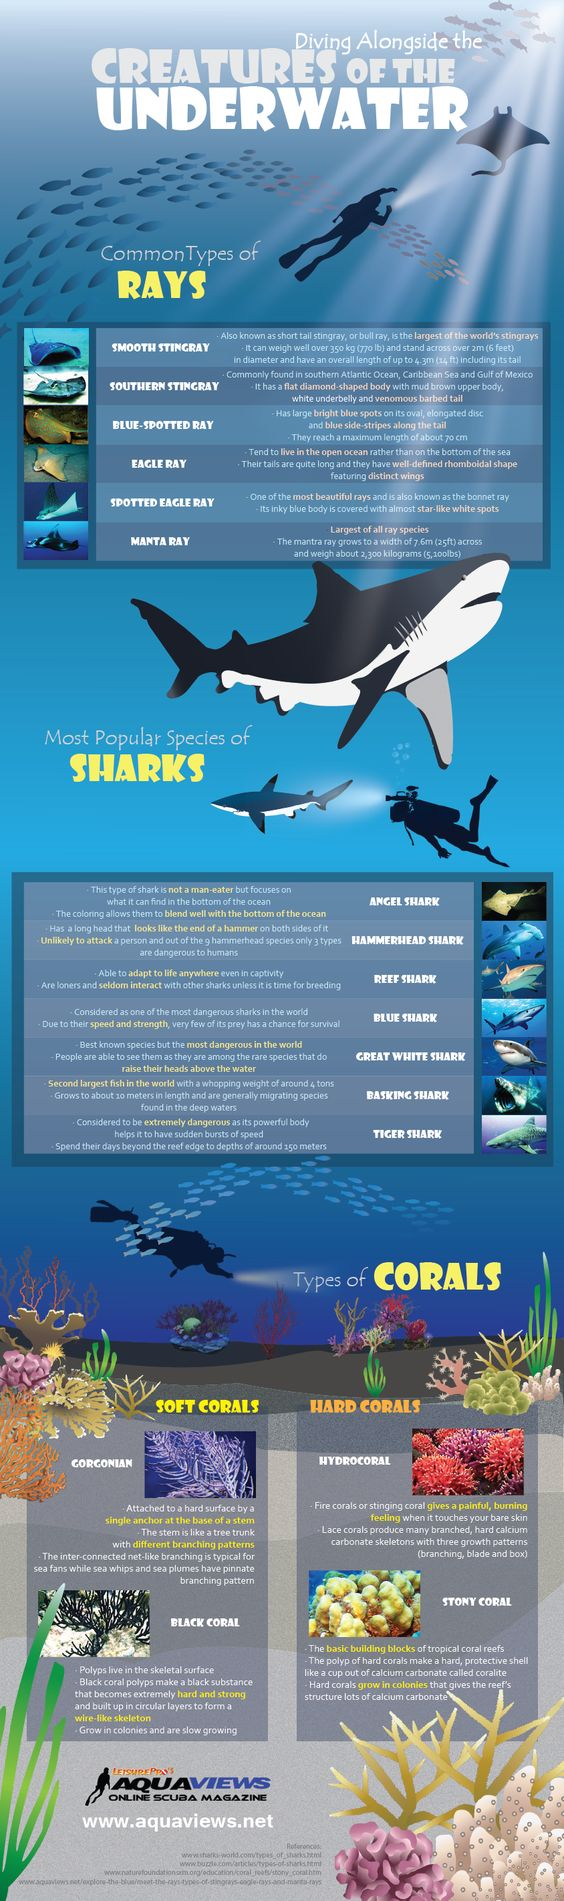 Creatures of the Underwater infographic